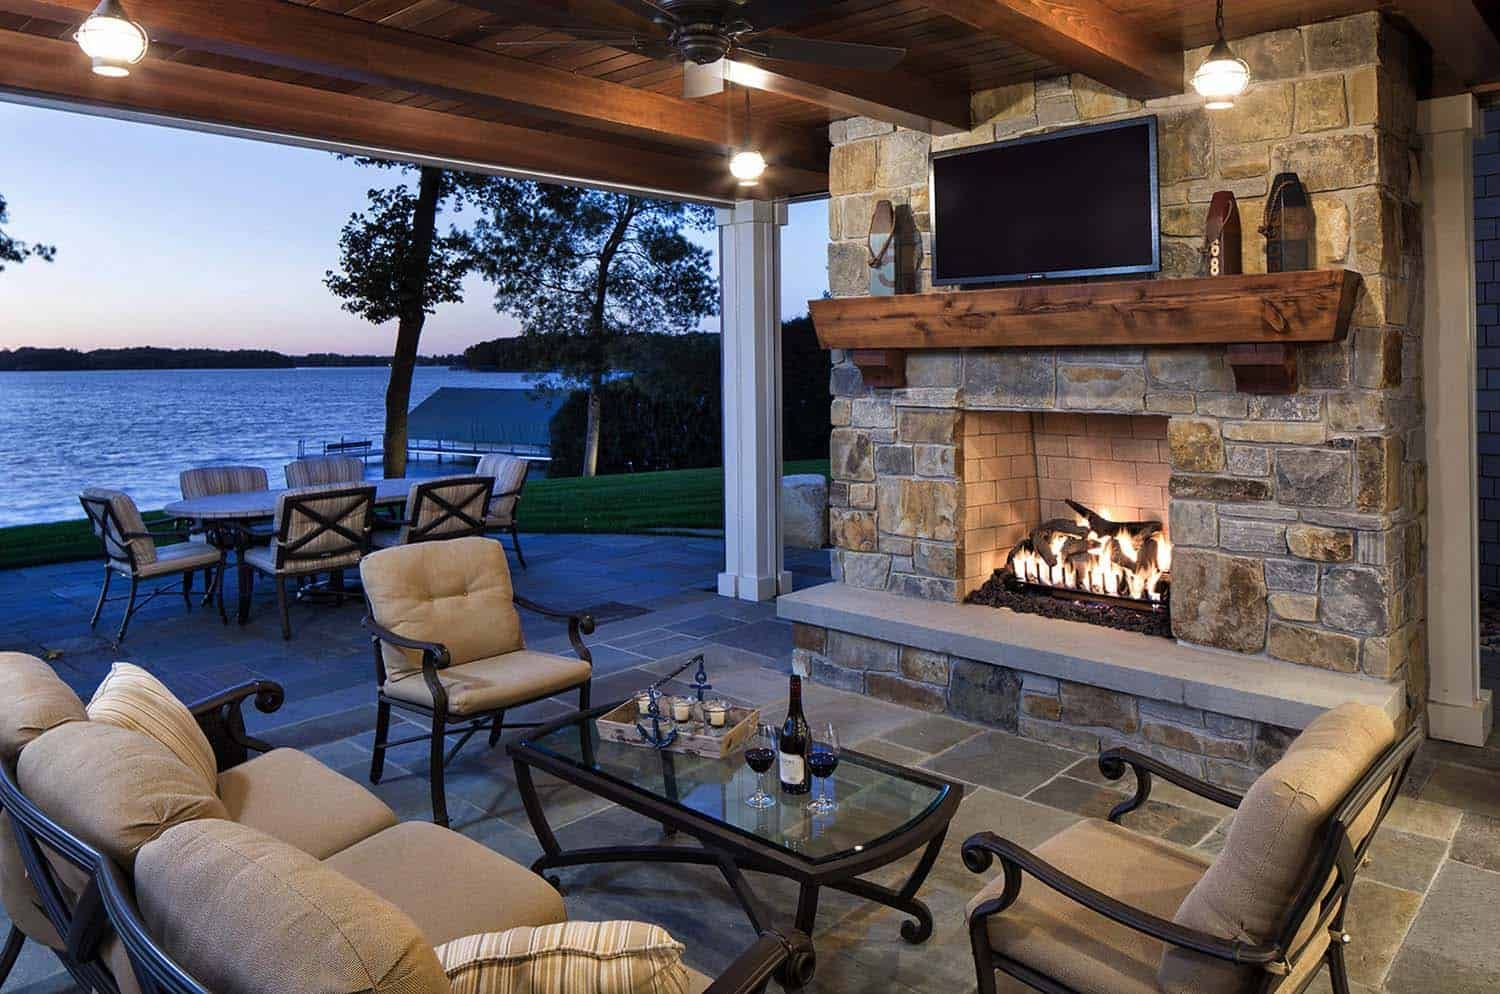 33 Fabulous Ideas For Creating Beautiful Outdoor Living Spaces Beautiful Outdoor Living Spaces Outdoor Living